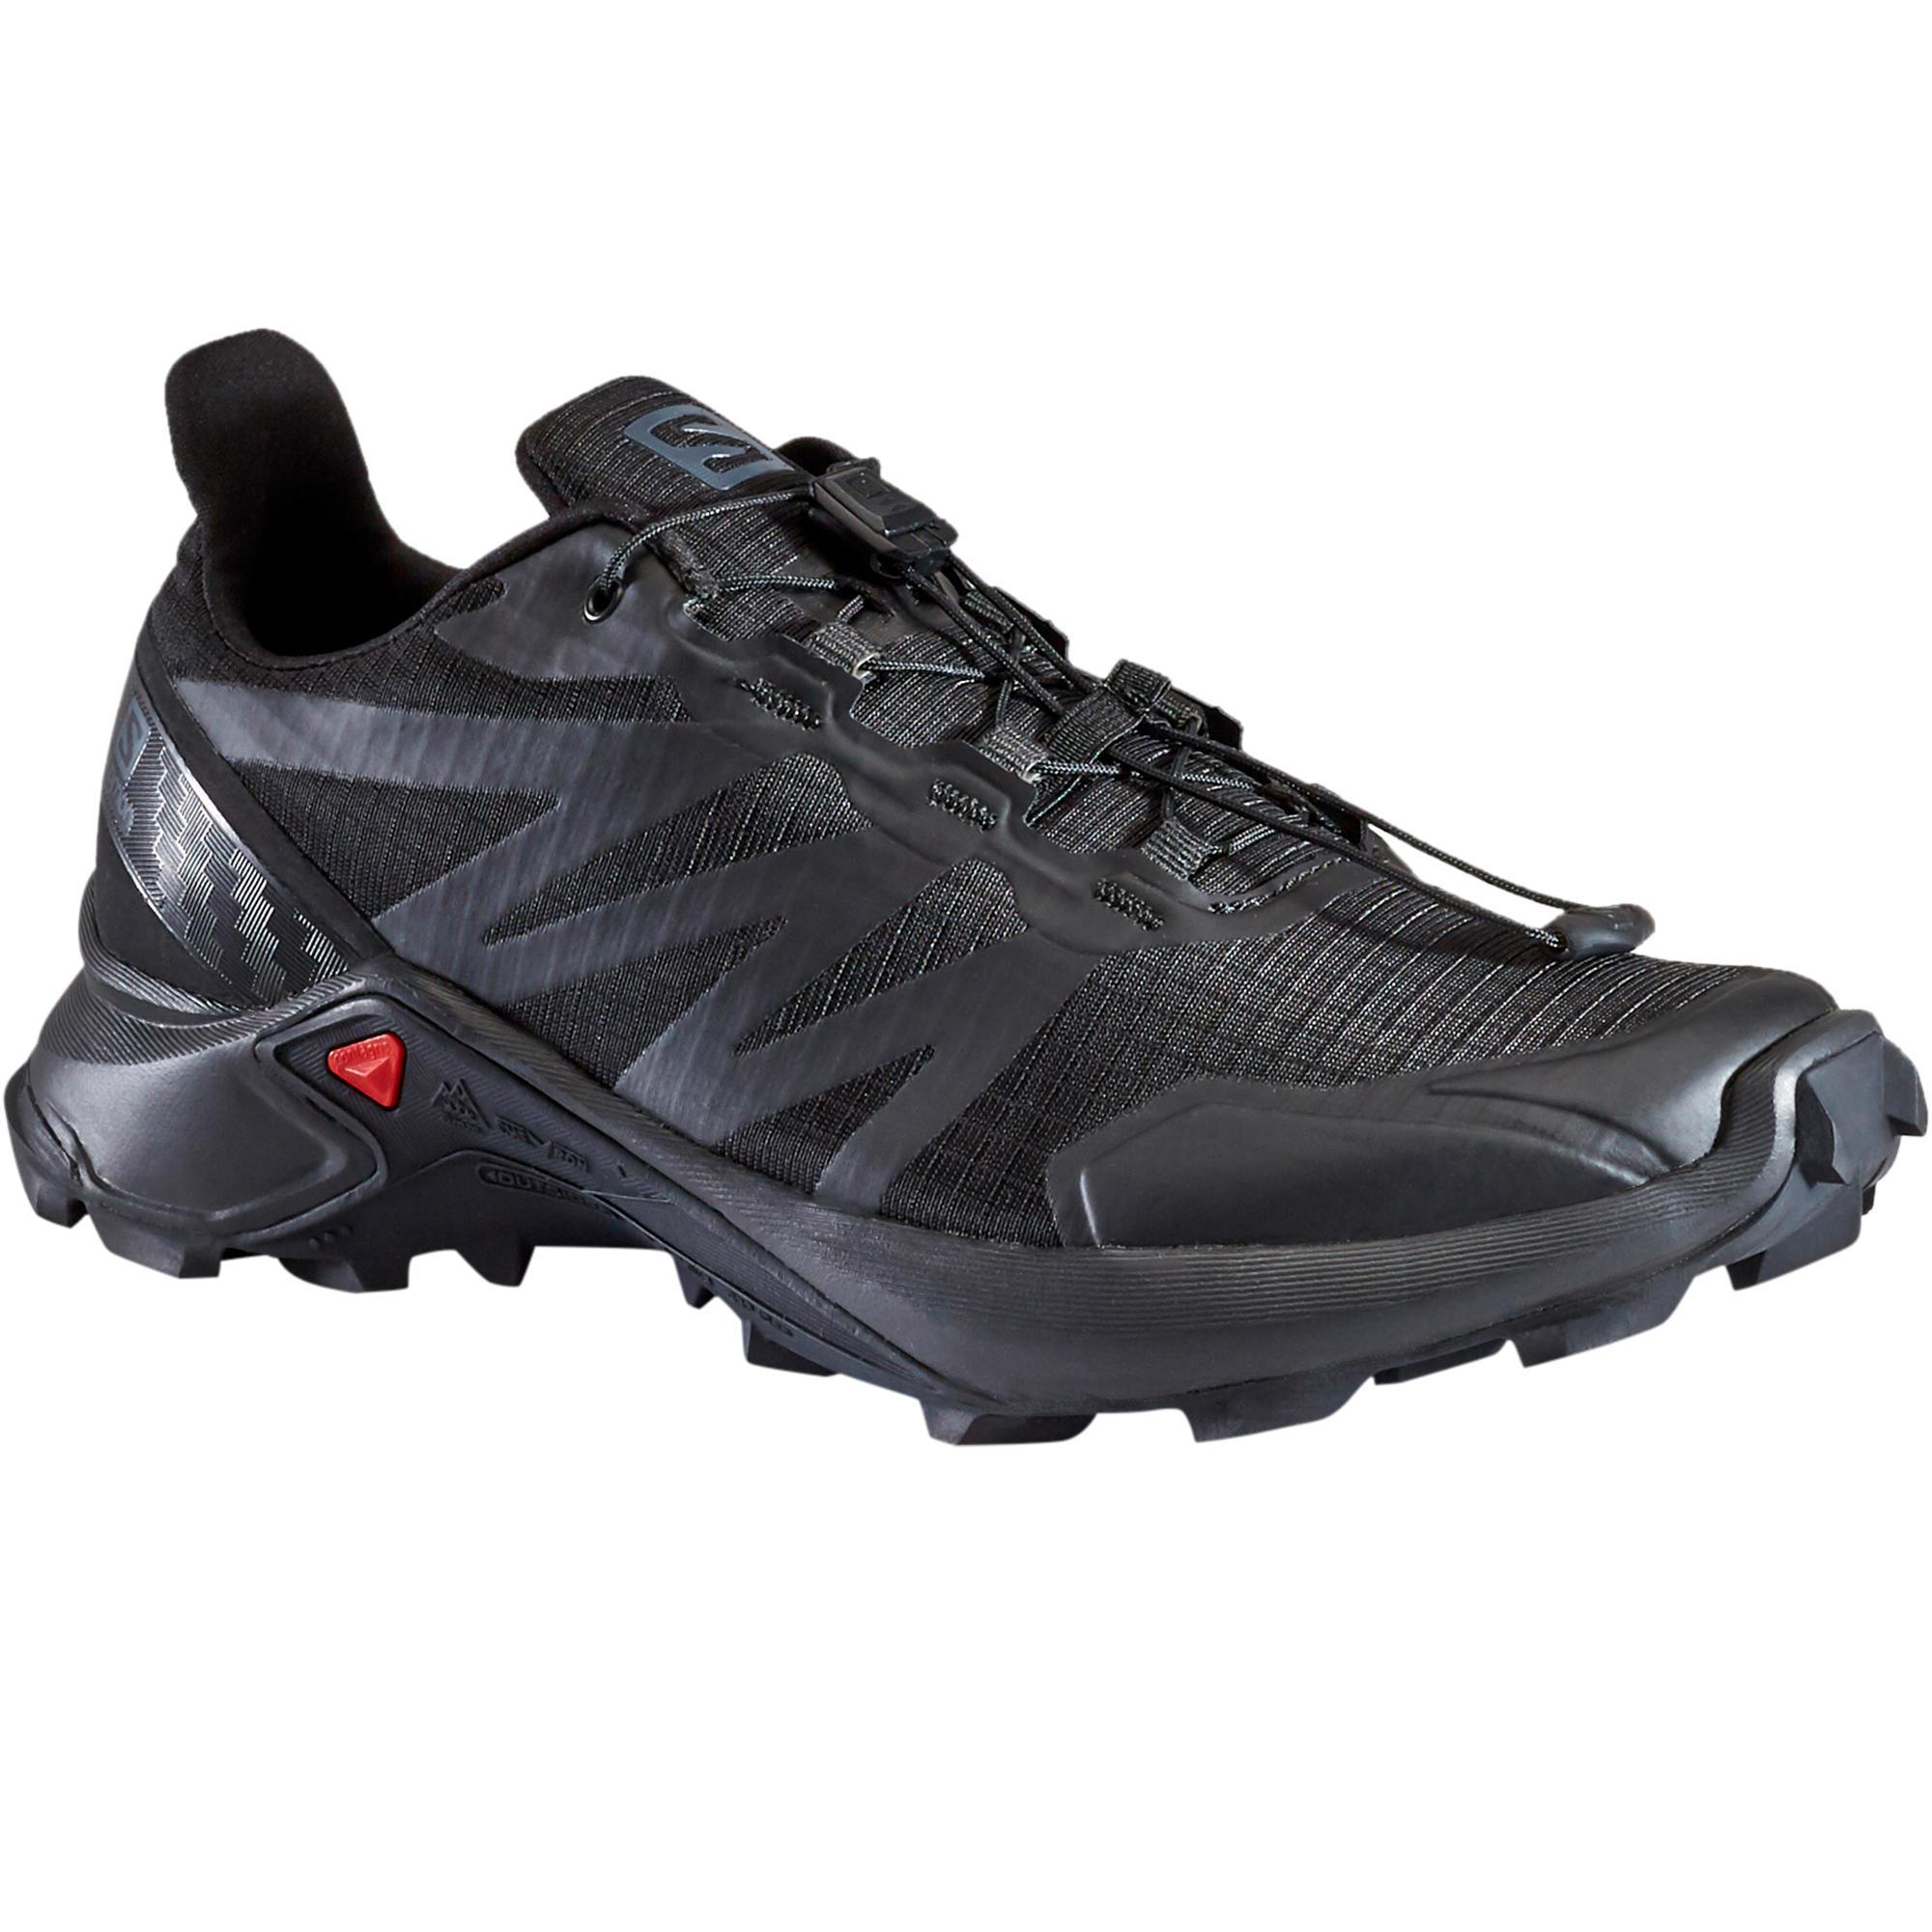 Zapatillas de Trail running SALOMON SUPERCROSS para Hombre negro